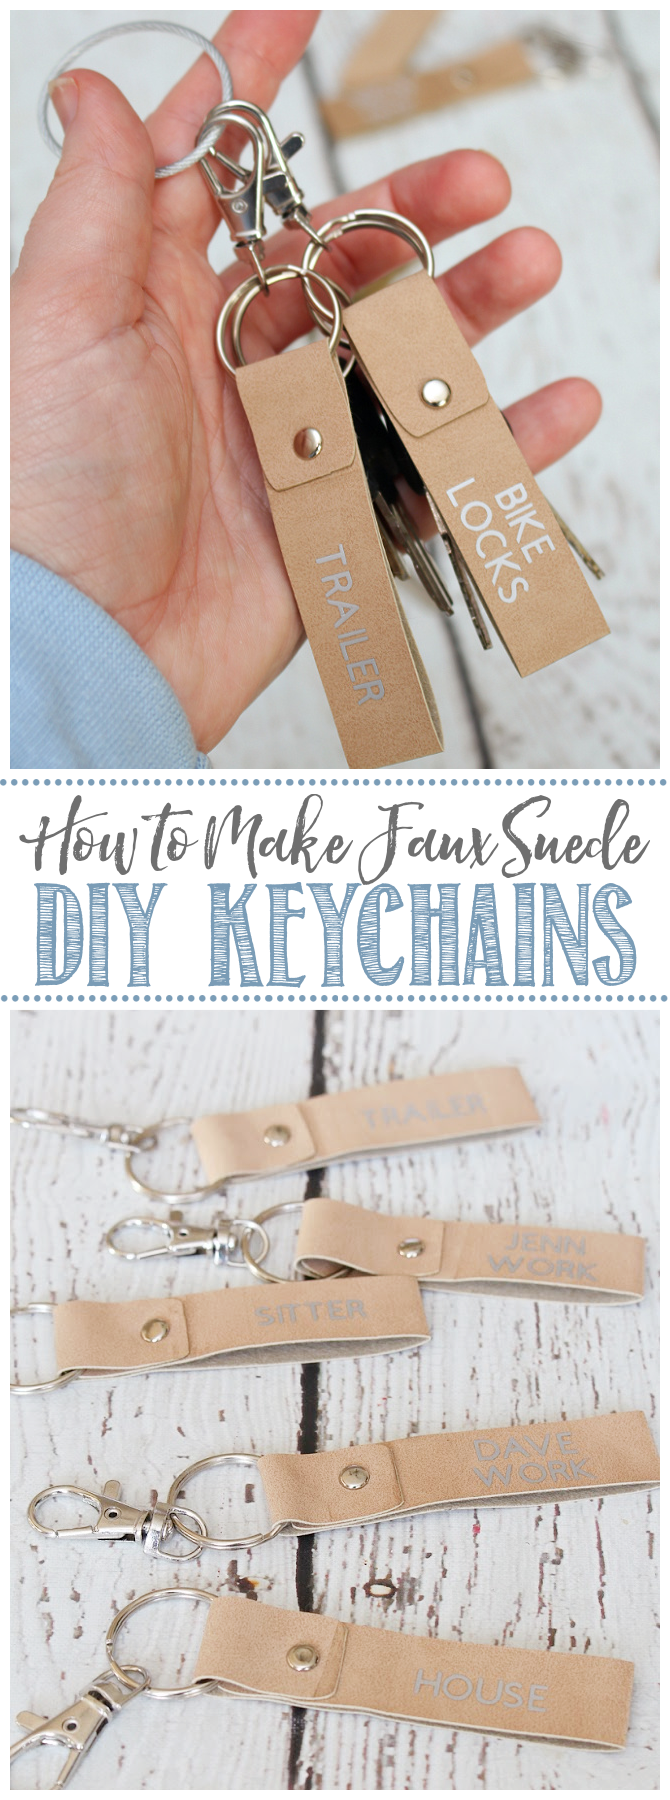 DIY keychains using faux leather and iron-on vinyl.